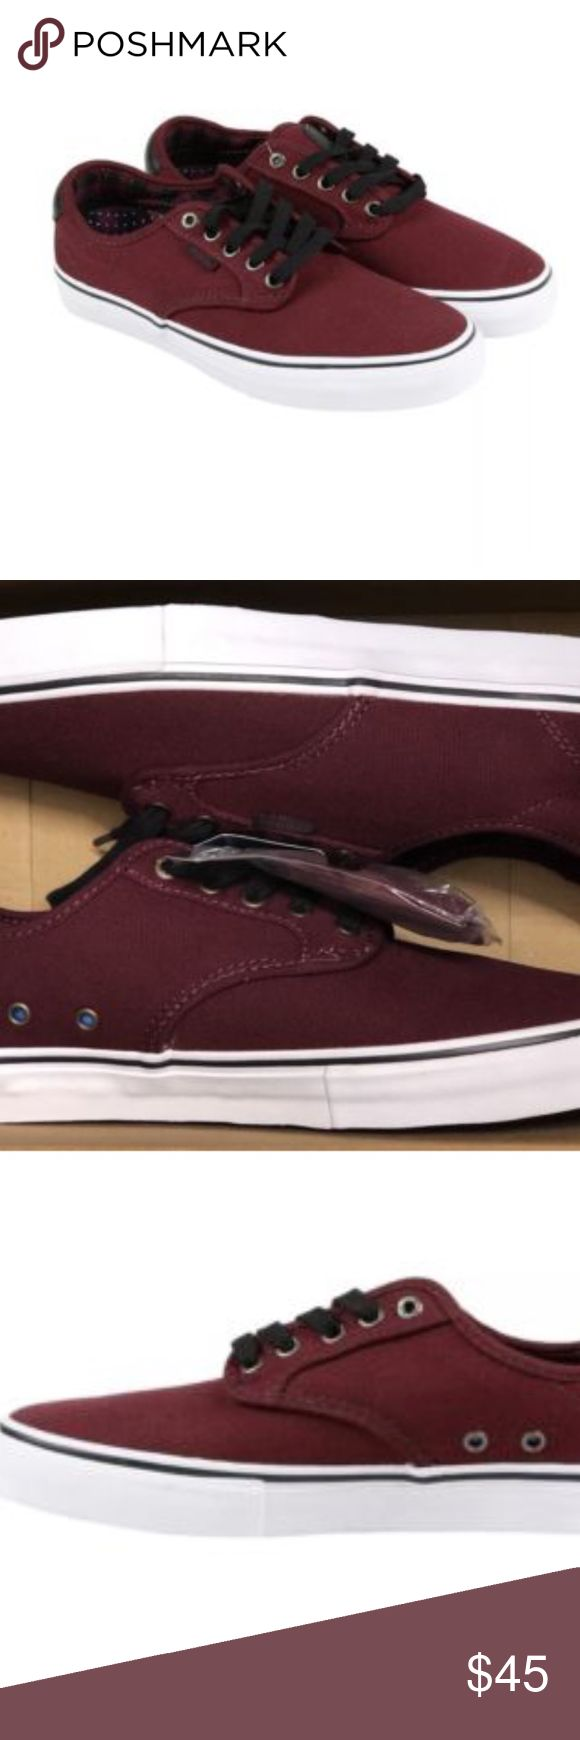 Vans Chima Ferguson Pro Waxed Canvas Red Dahlia Vans Chima Ferguson Pro Waxed Canvas Red Dahlia Red  Size Men 11 Brand new in box Vans Shoes Athletic Shoes